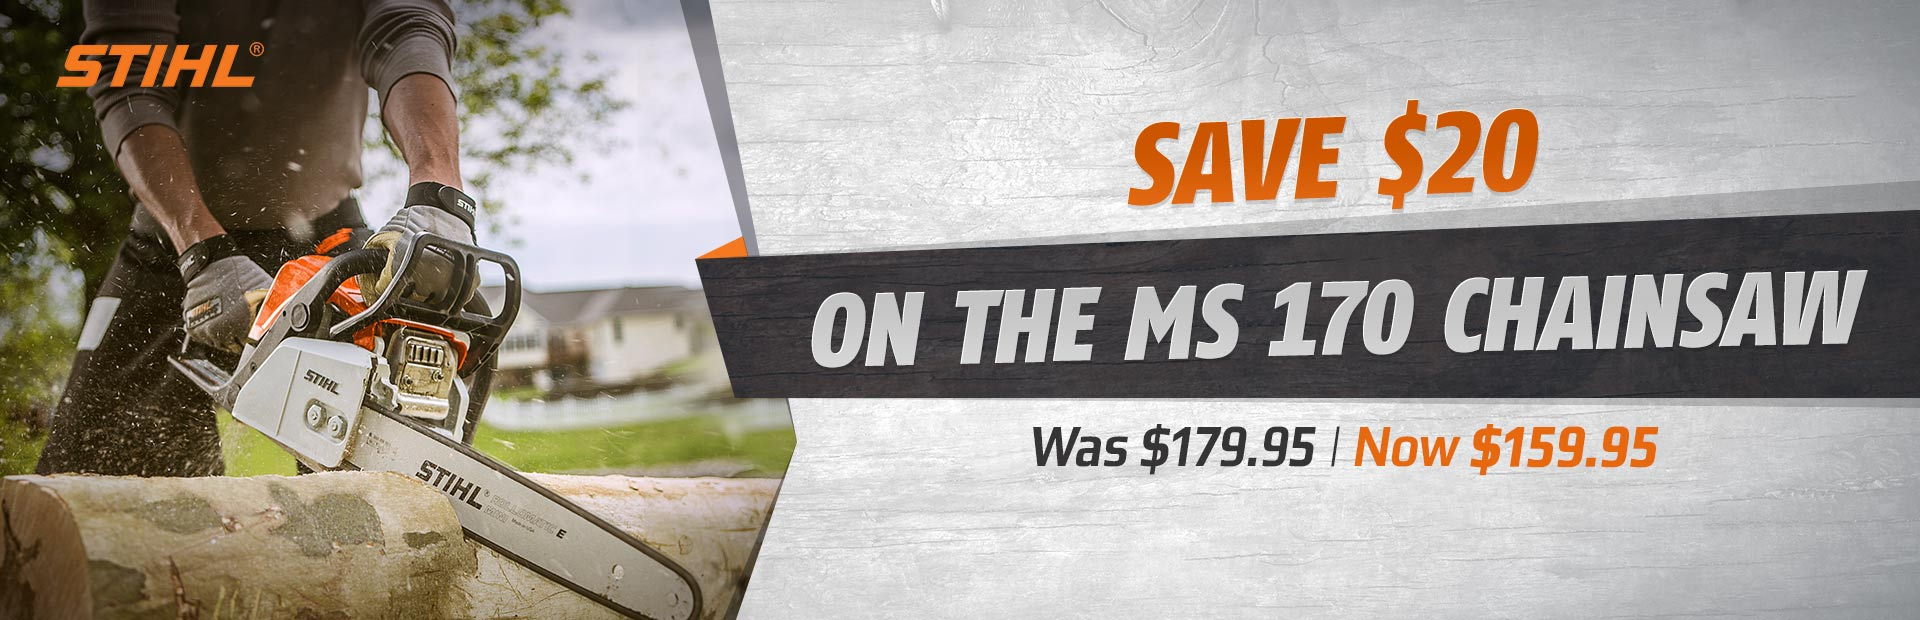 Save $20 on the STIHL MS 170 chainsaw!